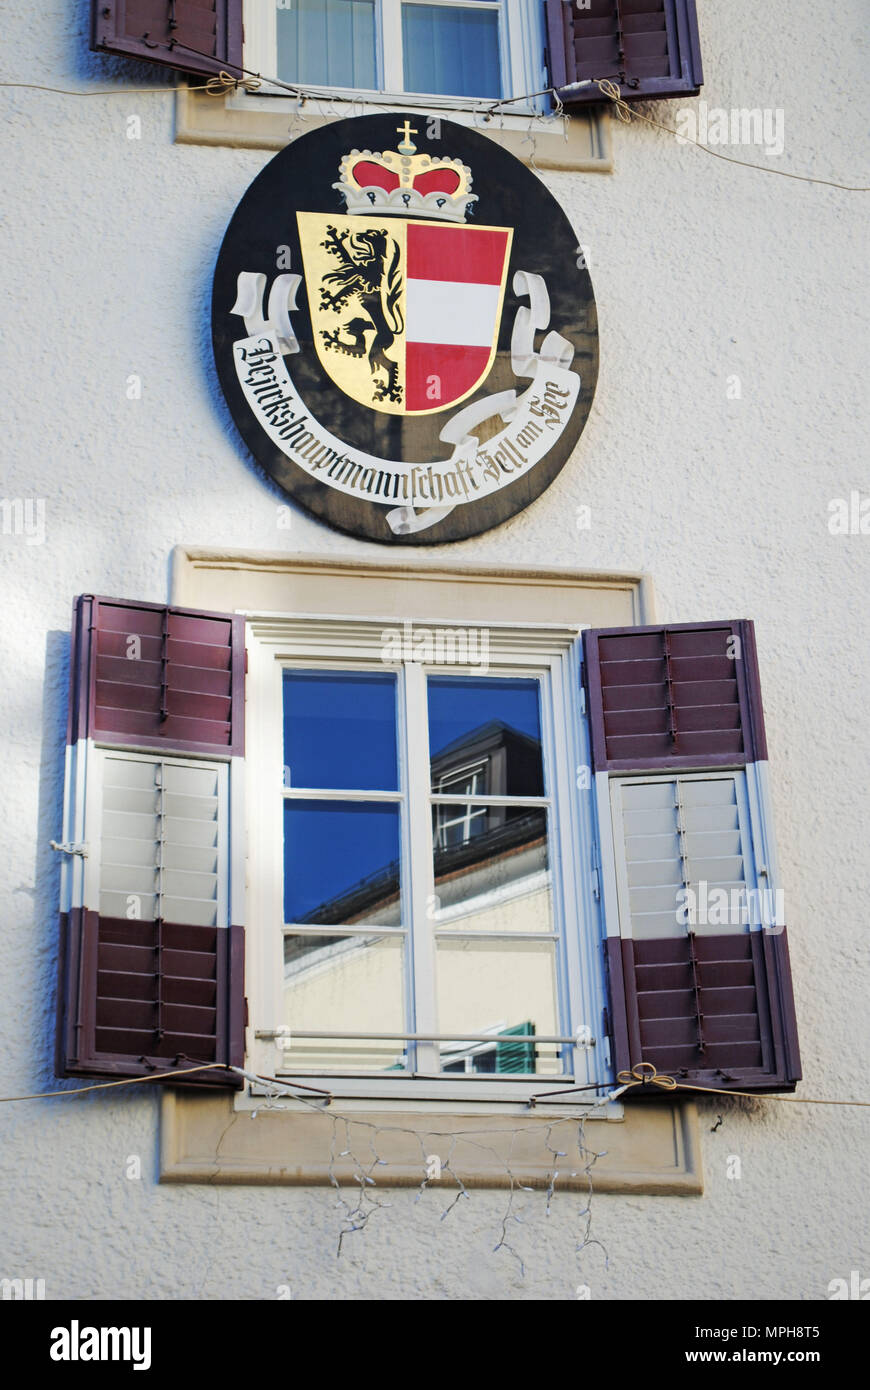 A detail on the district administration building in Zell am See, Austria, including the coat of arms and a window with wooden shutters. Stock Photo